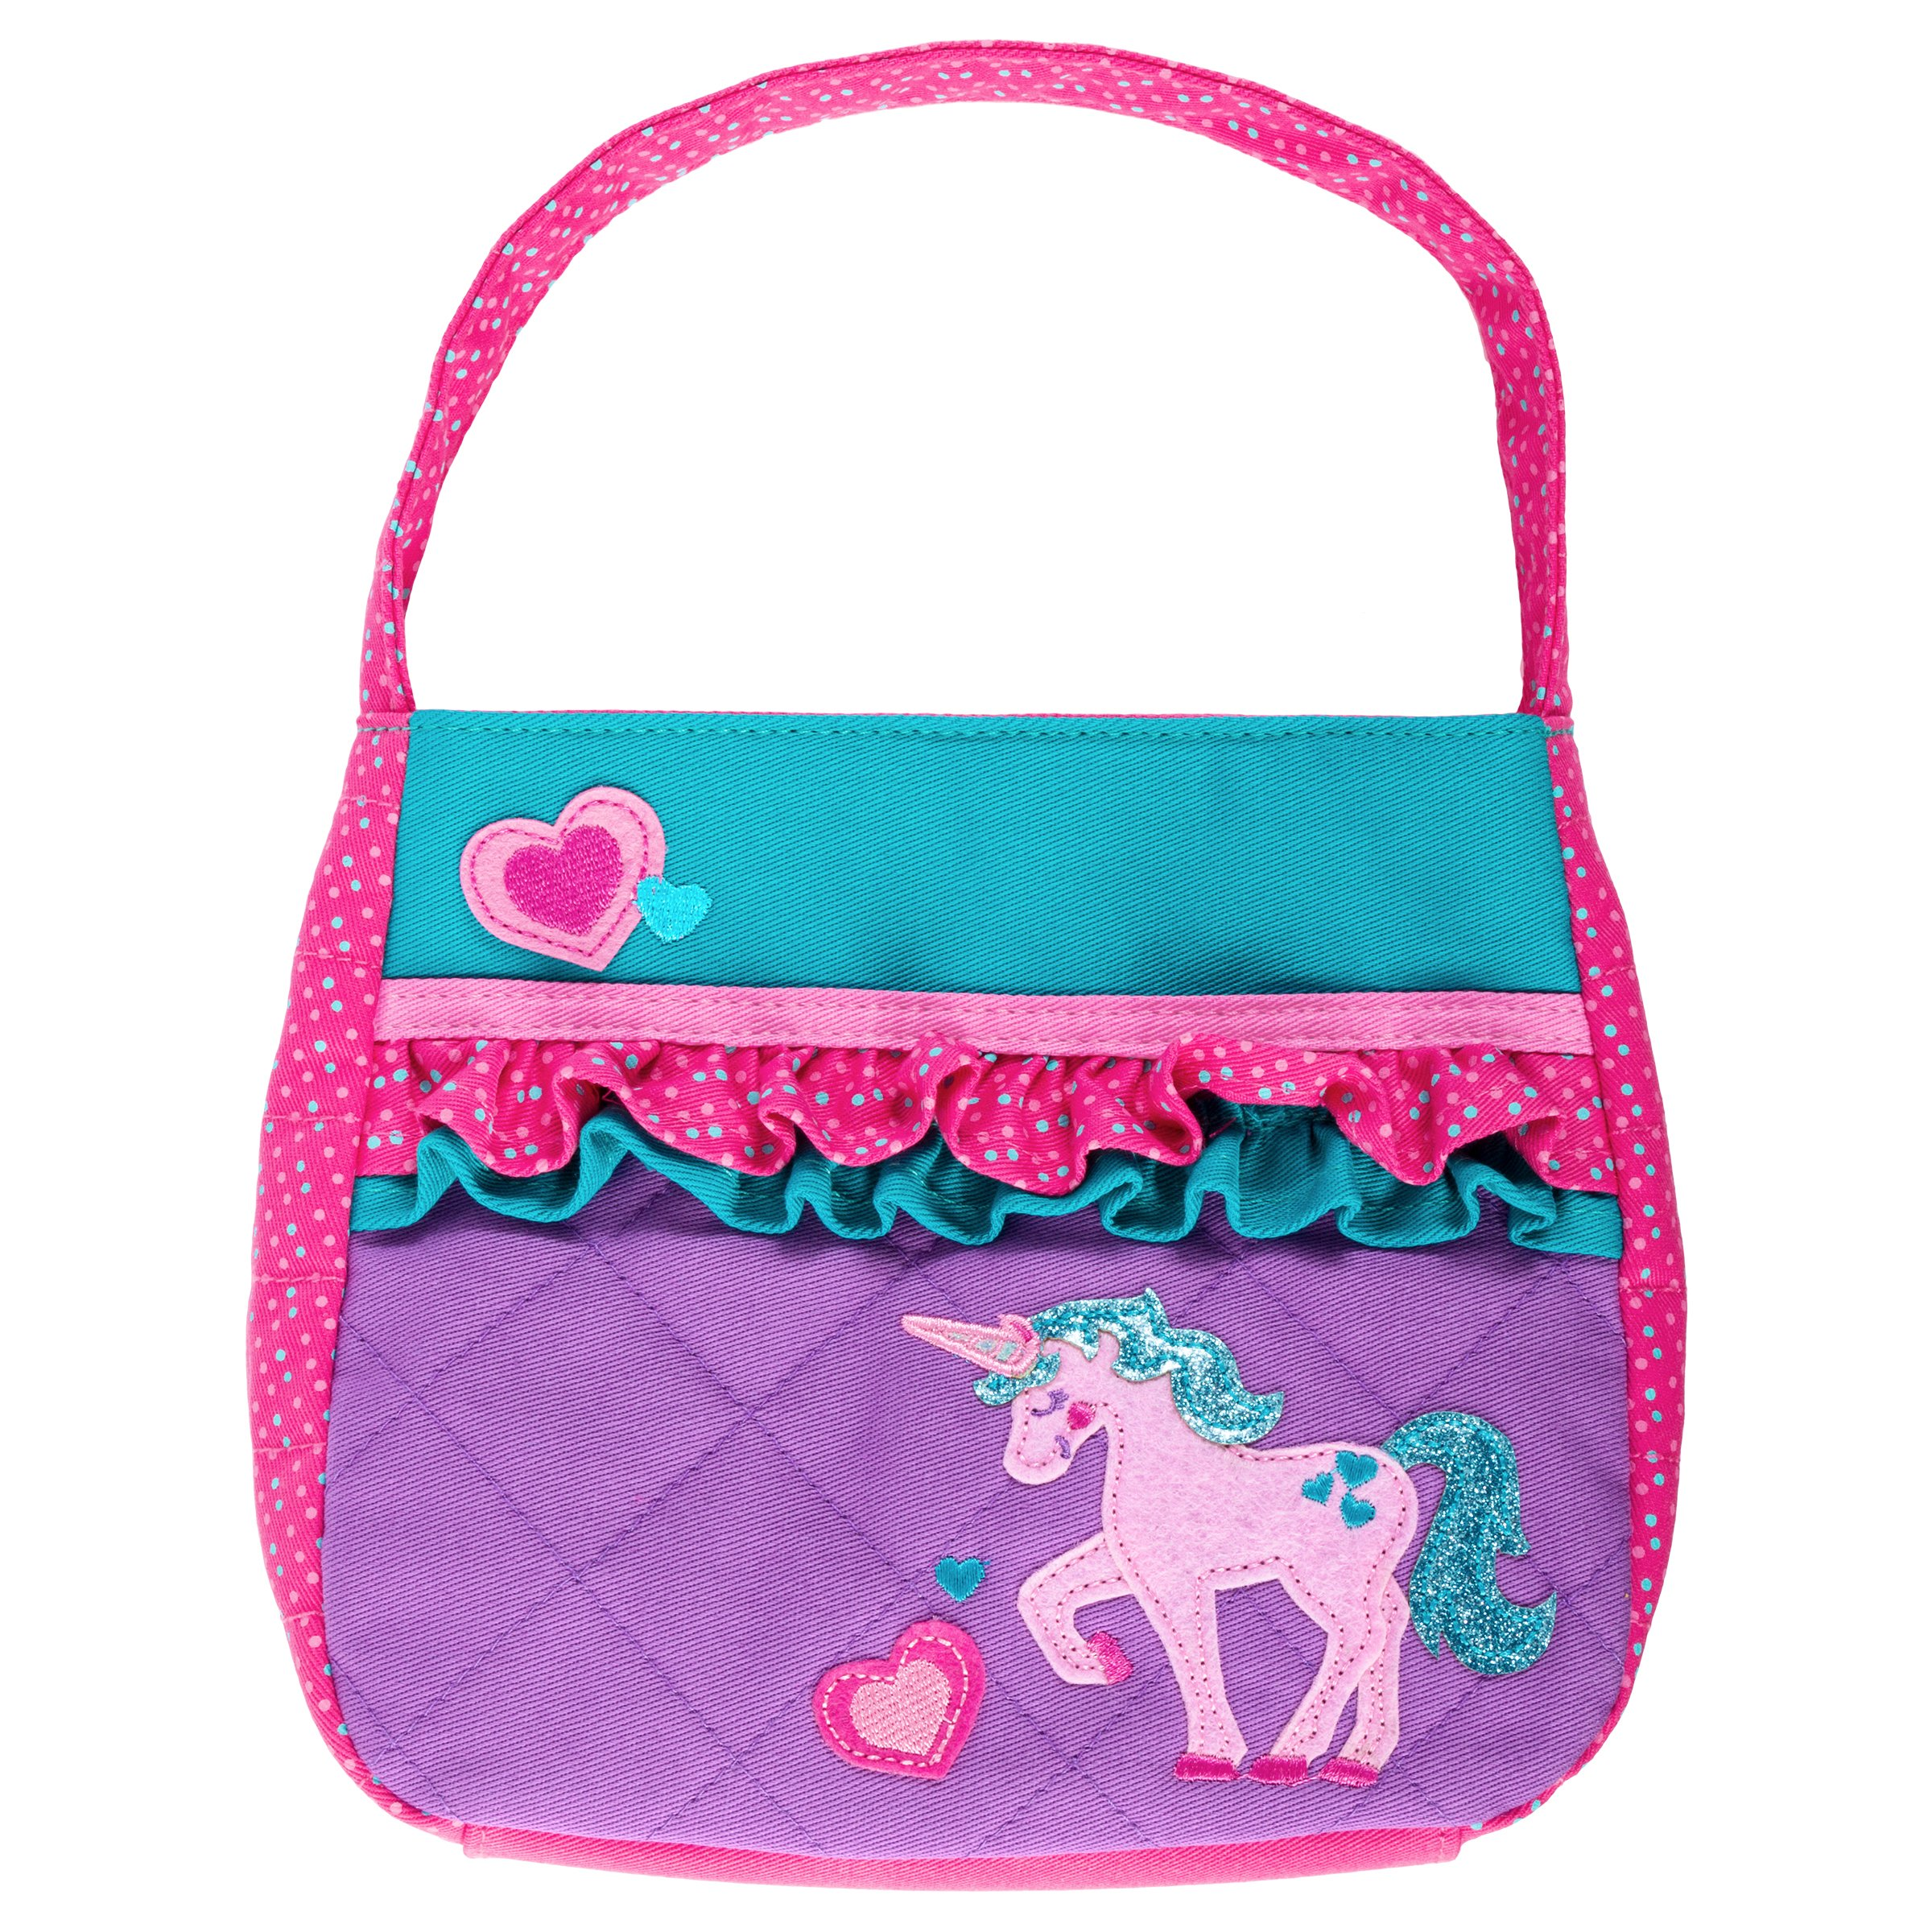 Stephen Joseph Little Girls' Quilted Purse, Unicorn, One Size